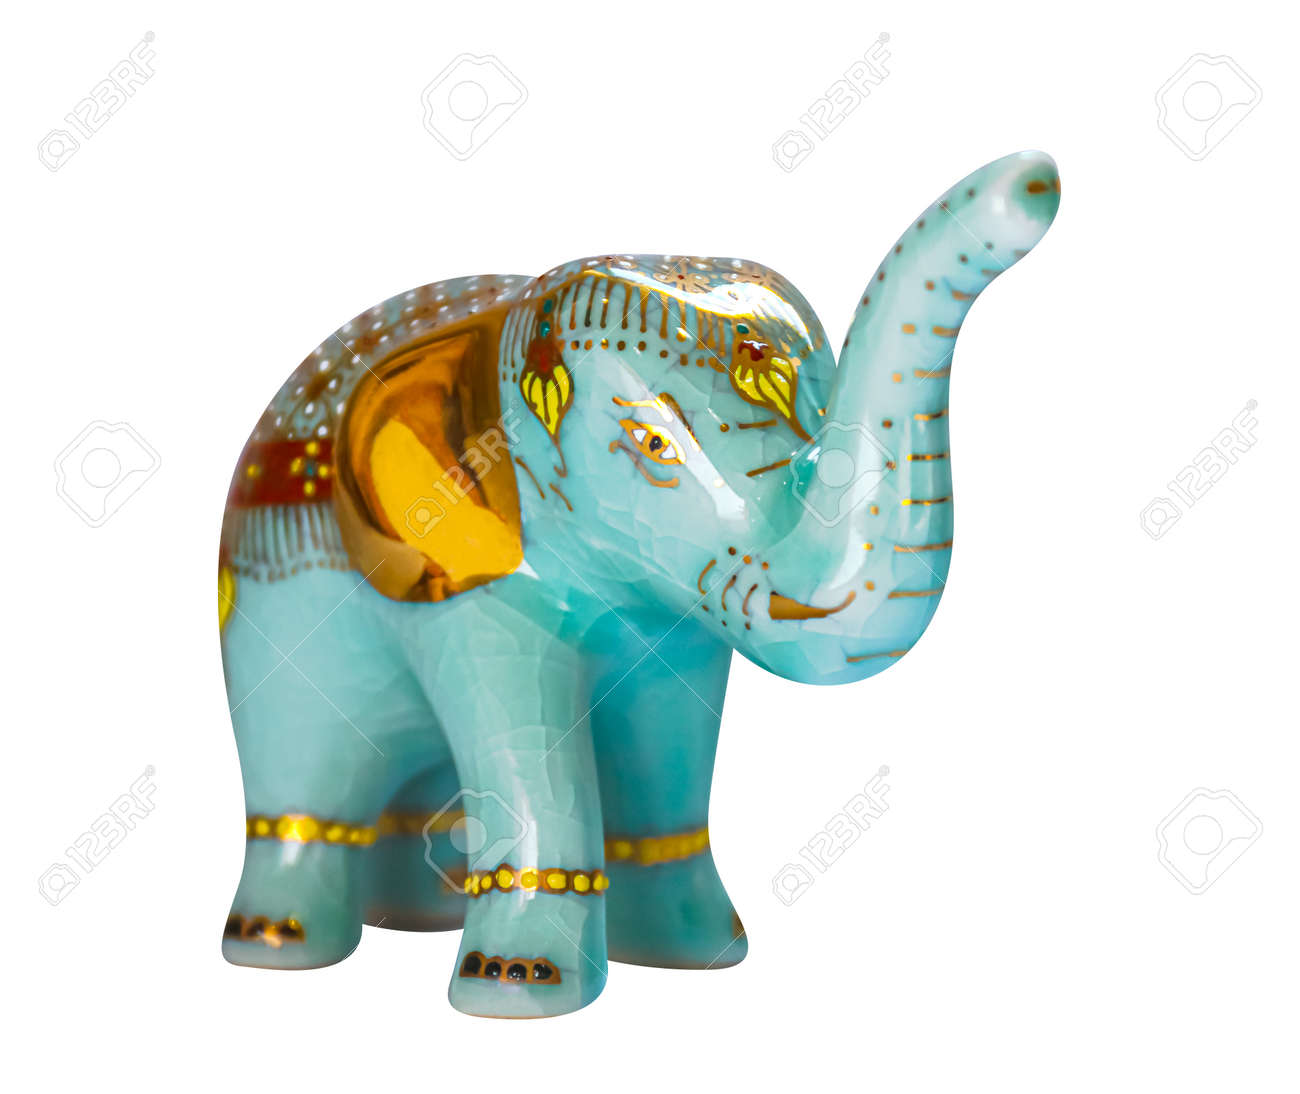 Ceramic Elephant Souvenir from Thailand isolated on white - 169068104